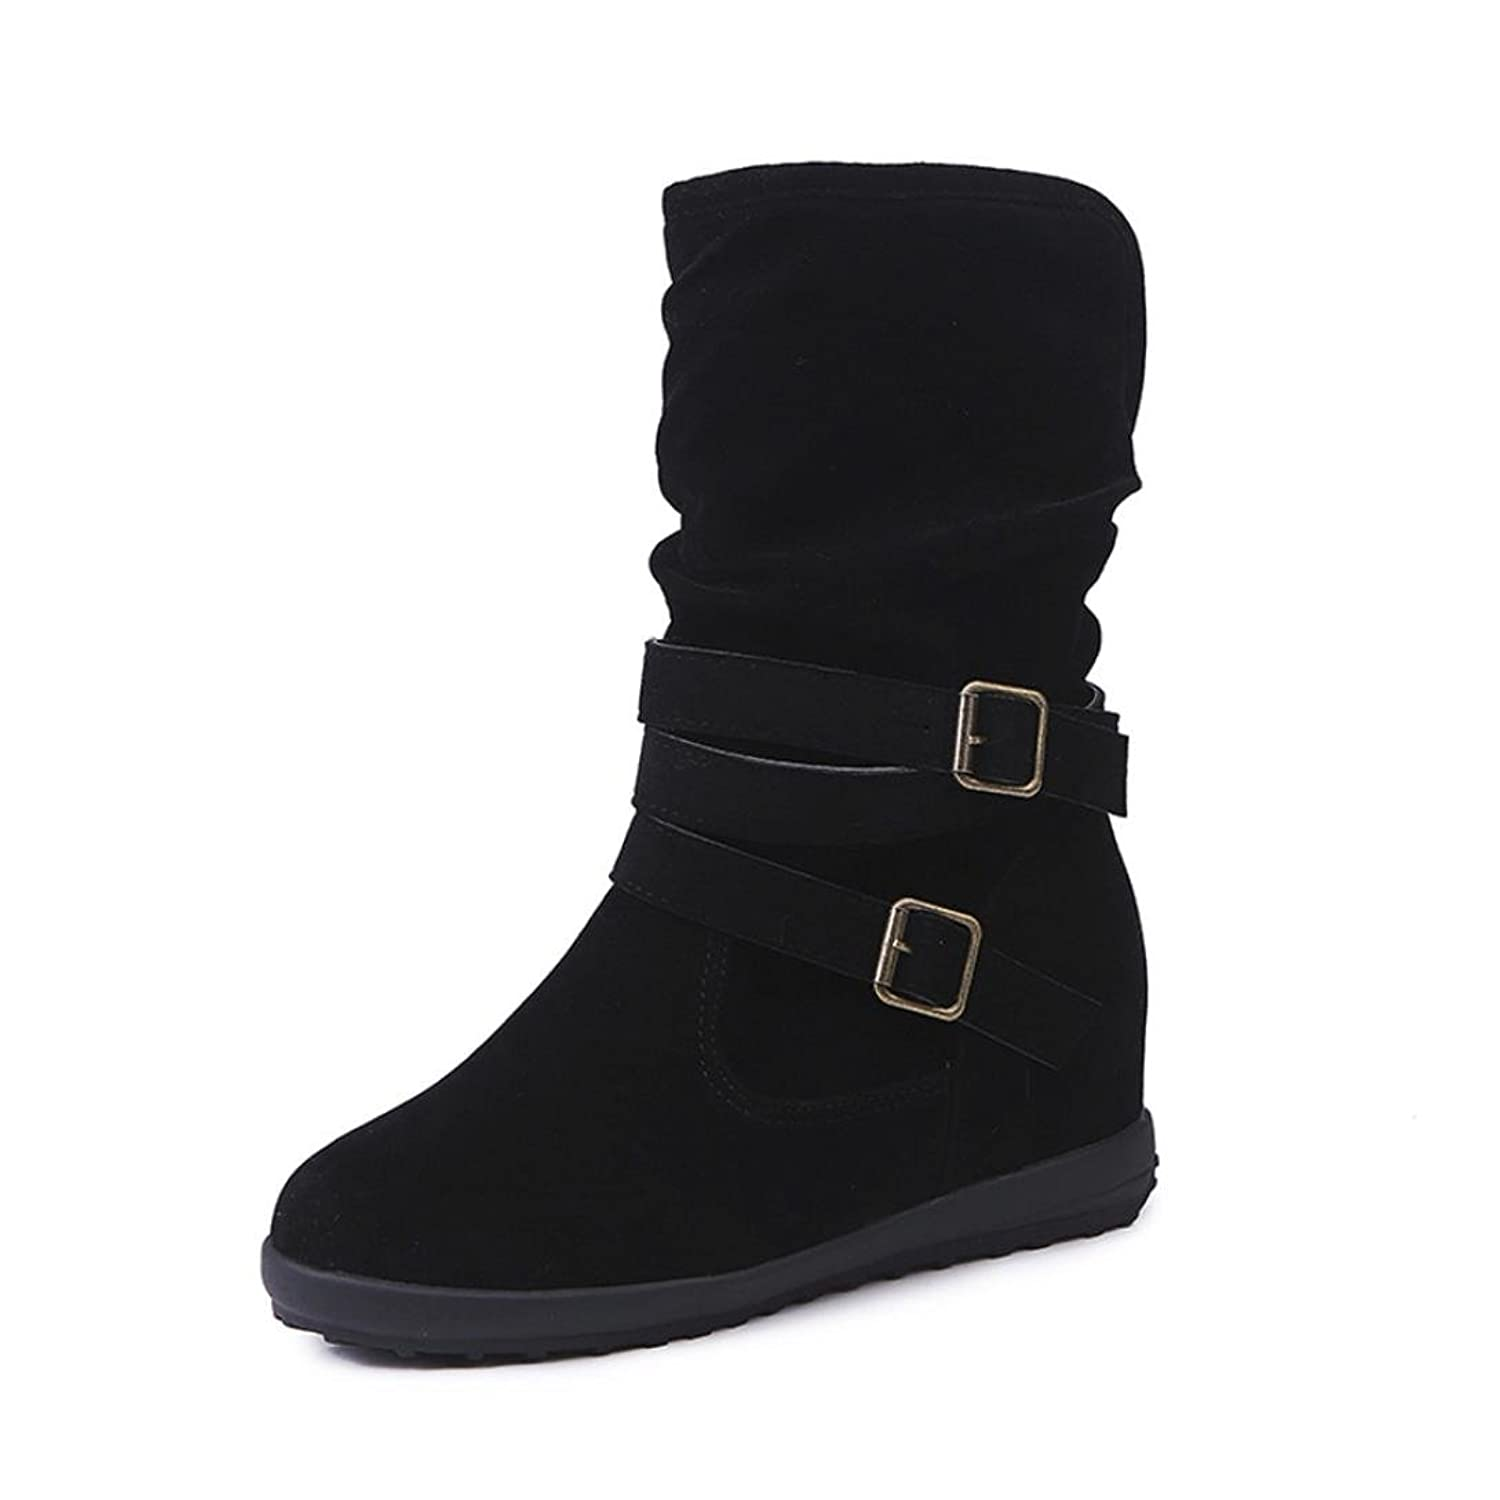 Inkach Womens Winter Boots   Knee High Slouchy Boot Shoes   High Tube Flat Riding Boots